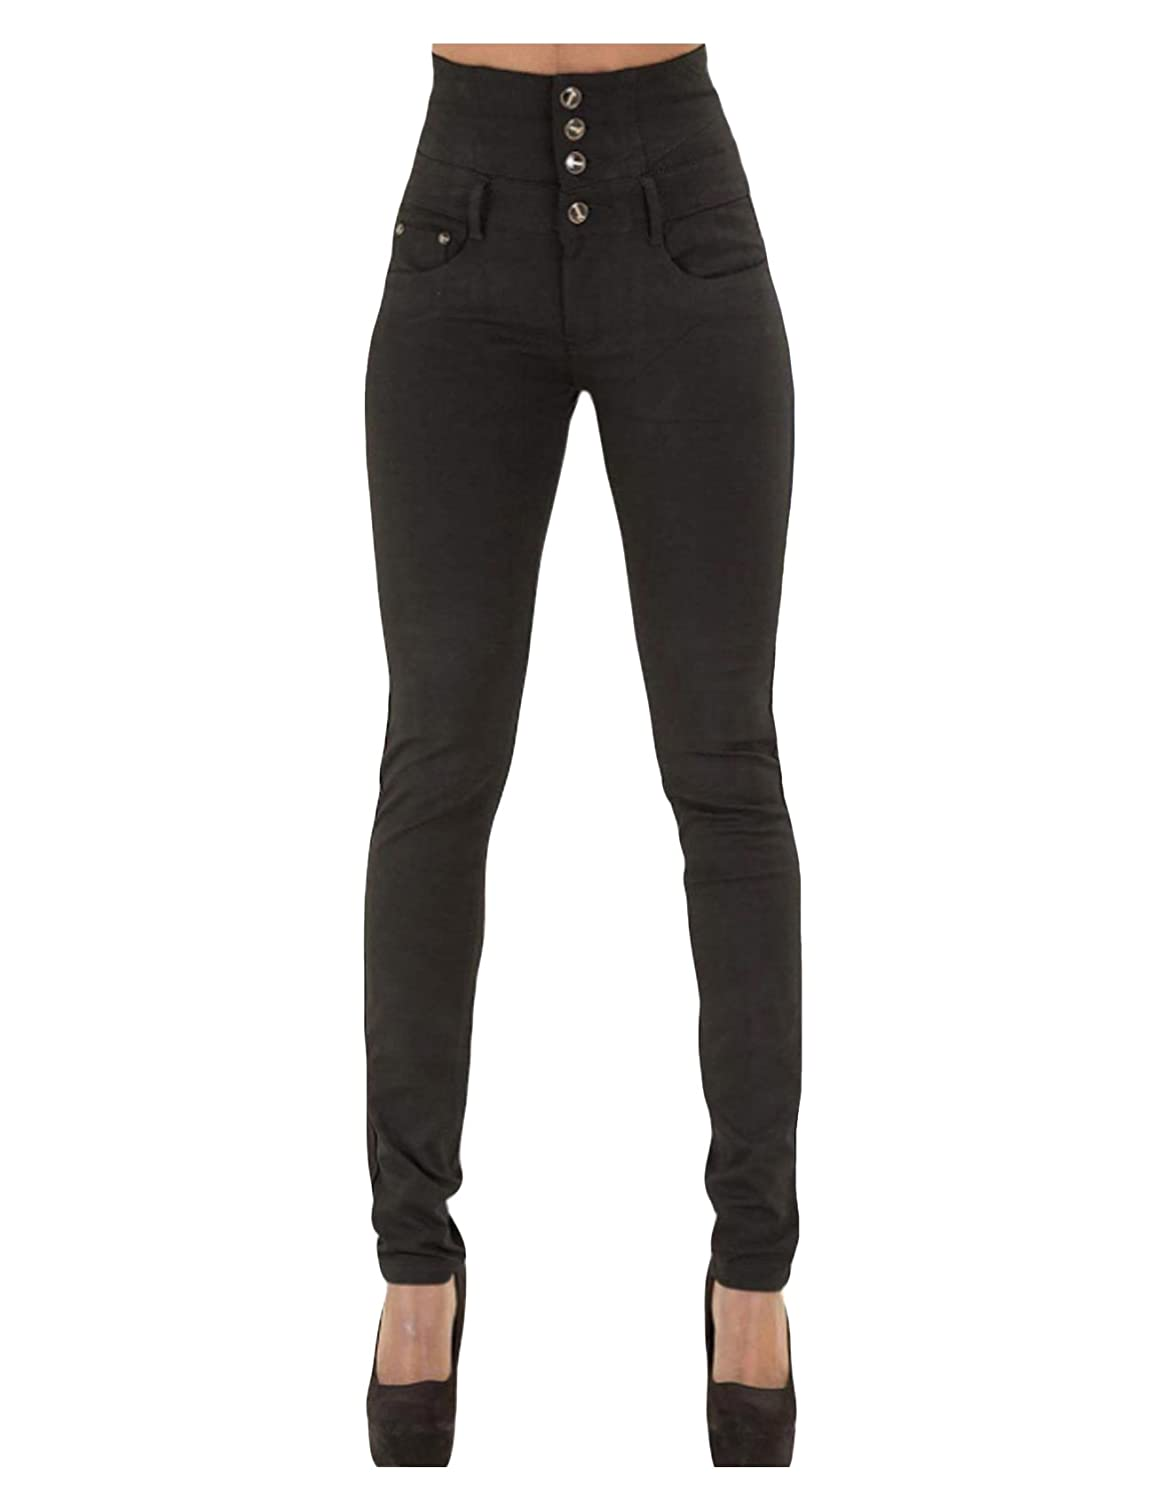 9d0dc956c09 Jueshanzj Womens Pants Sexy Skinny Jeans Button Down High Waist Pants:  Amazon.ca: Clothing & Accessories